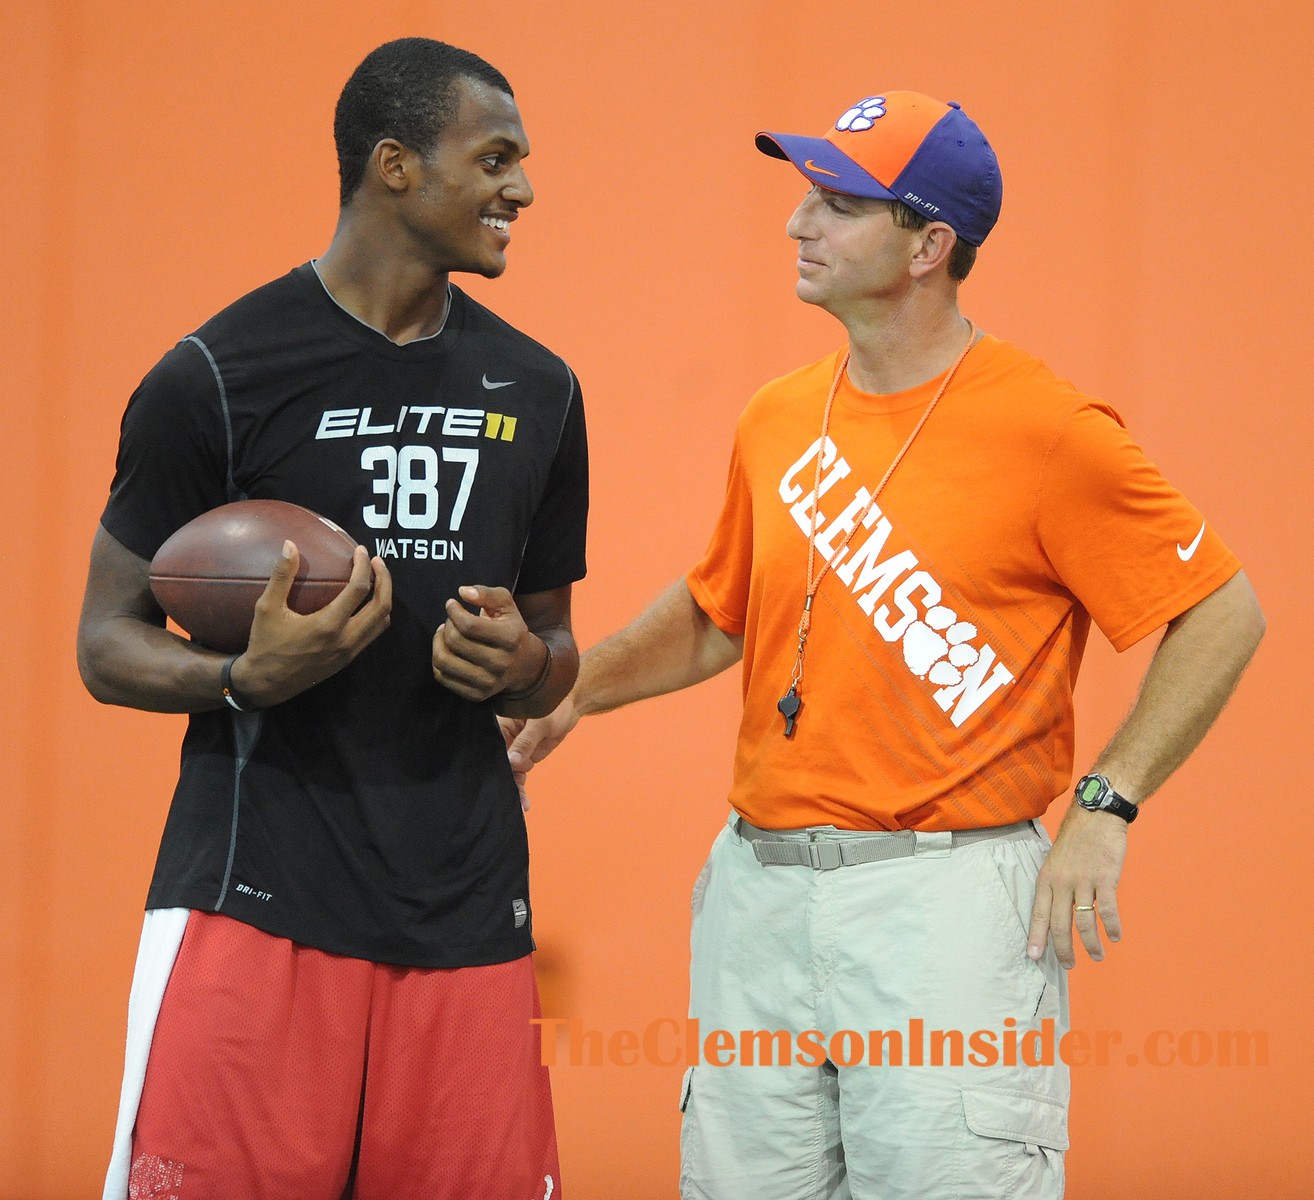 Clemson head coach Dabo Swinney talks with QB DeShaun Watson during Swinney's football camp Wednesday, June 12, 2013.